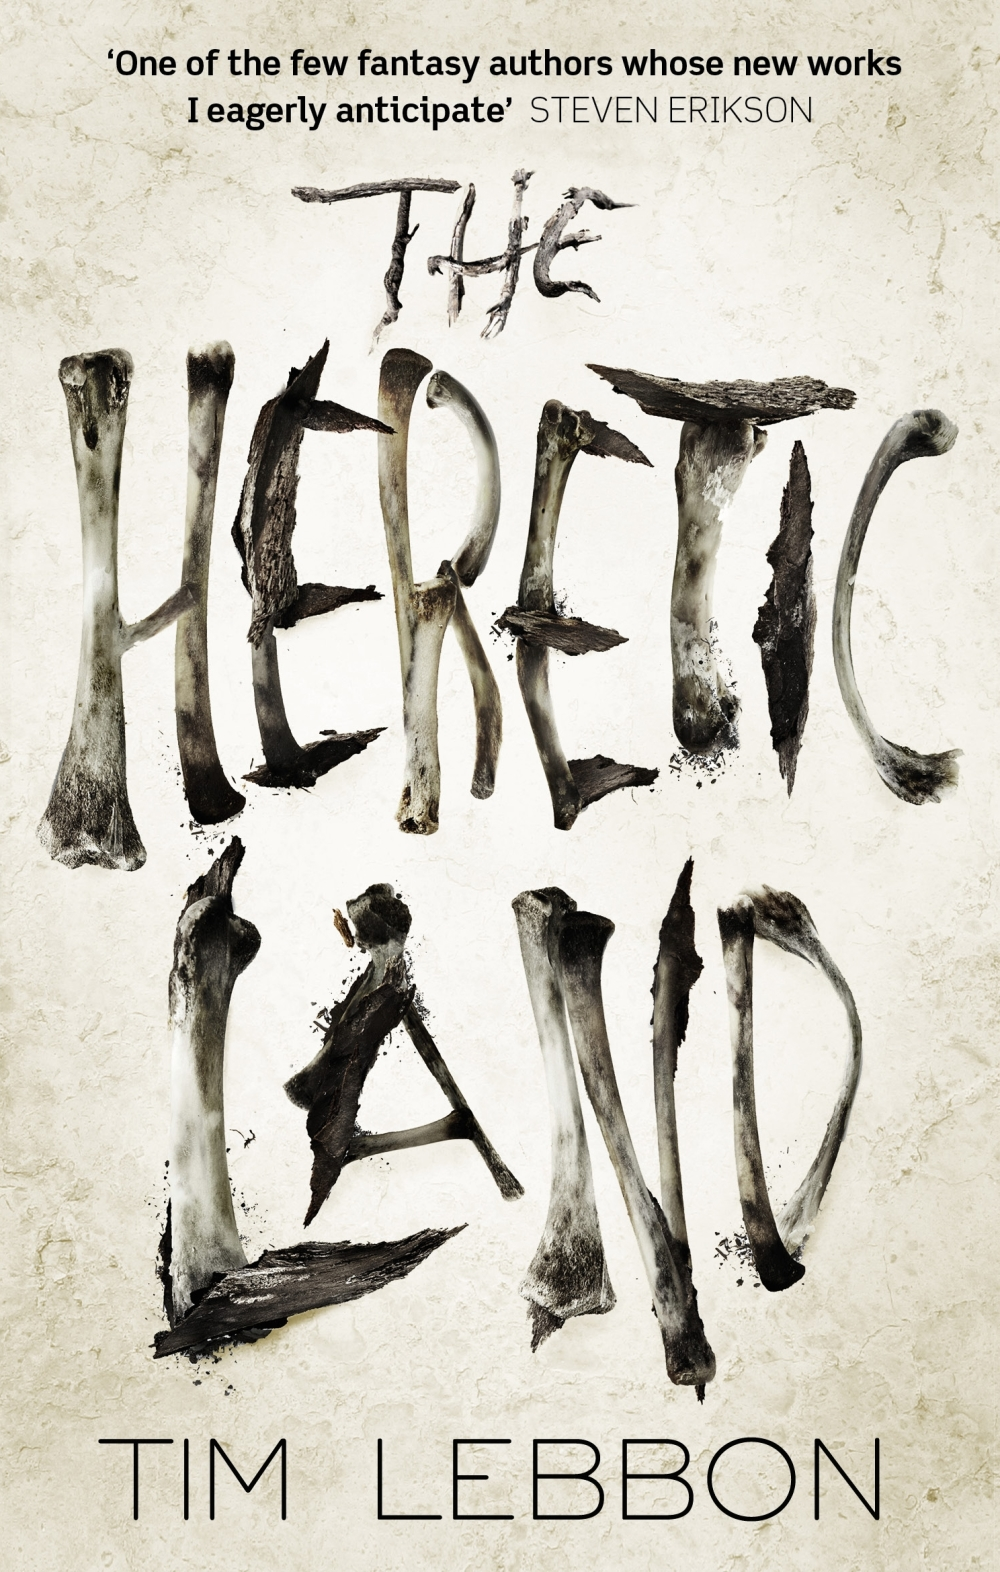 The cover for Tim Lebbon's new fantasy novel THE HERETIC LAND